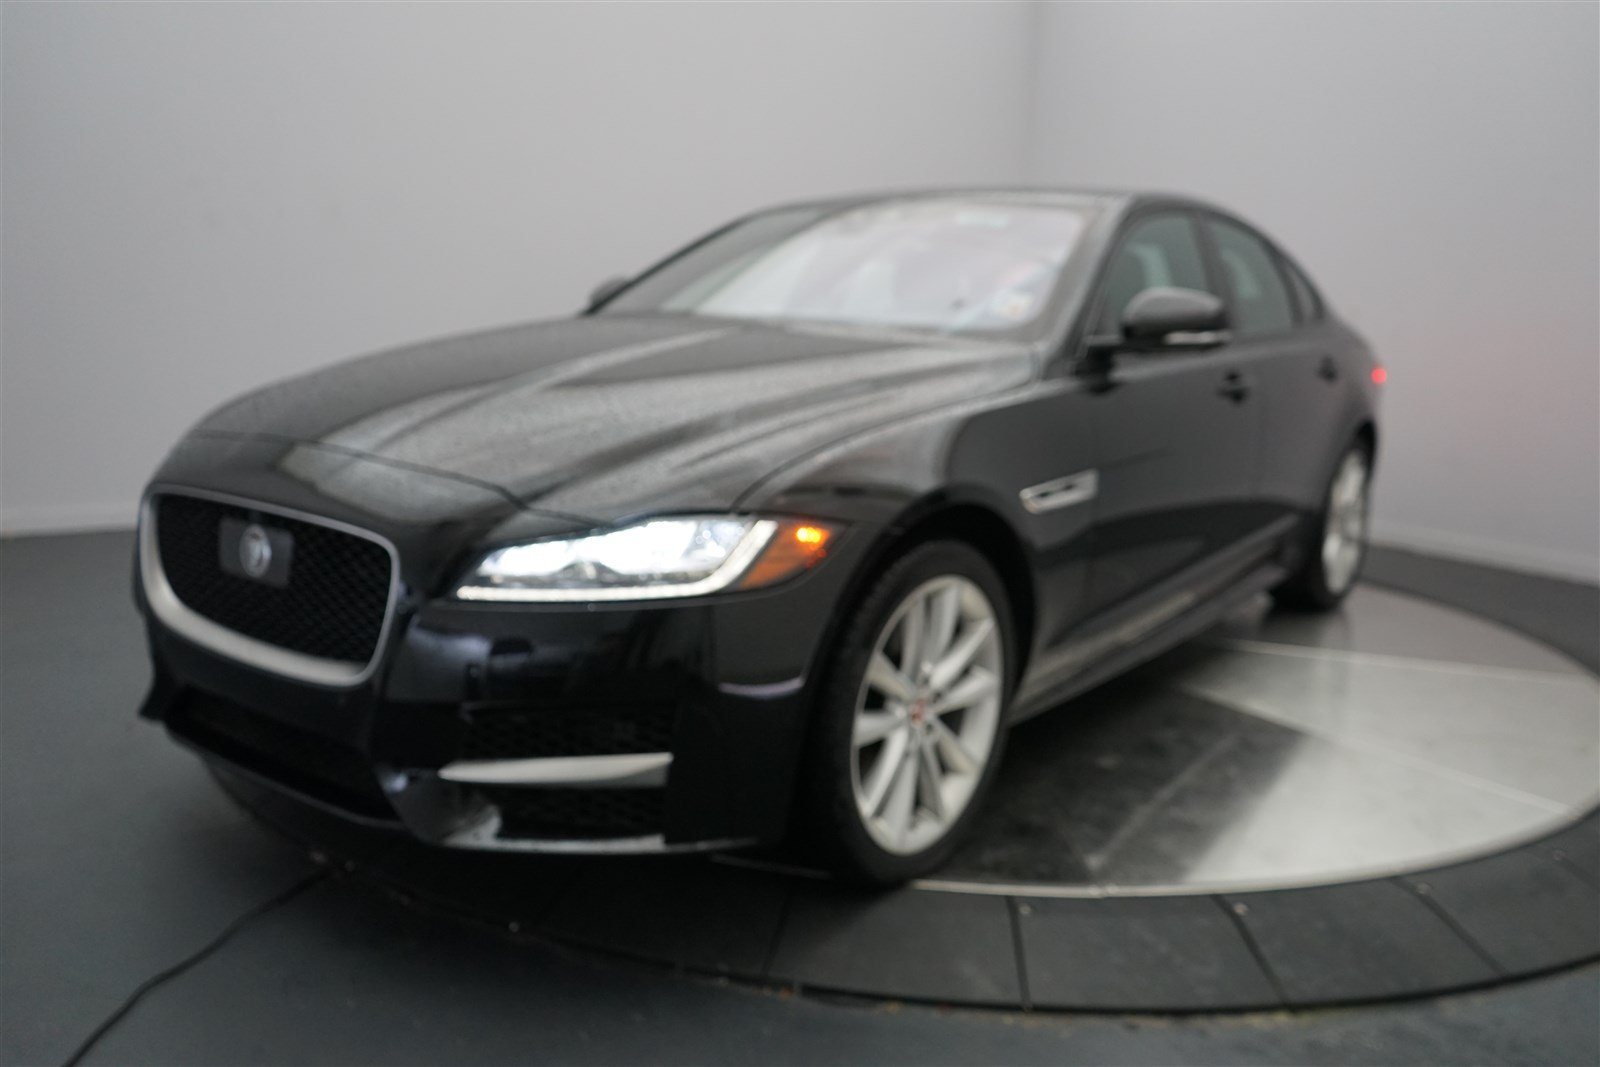 new 2016 jaguar xf 35t r sport 4dr car in shreveport 5257 jaguar of shreveport. Black Bedroom Furniture Sets. Home Design Ideas